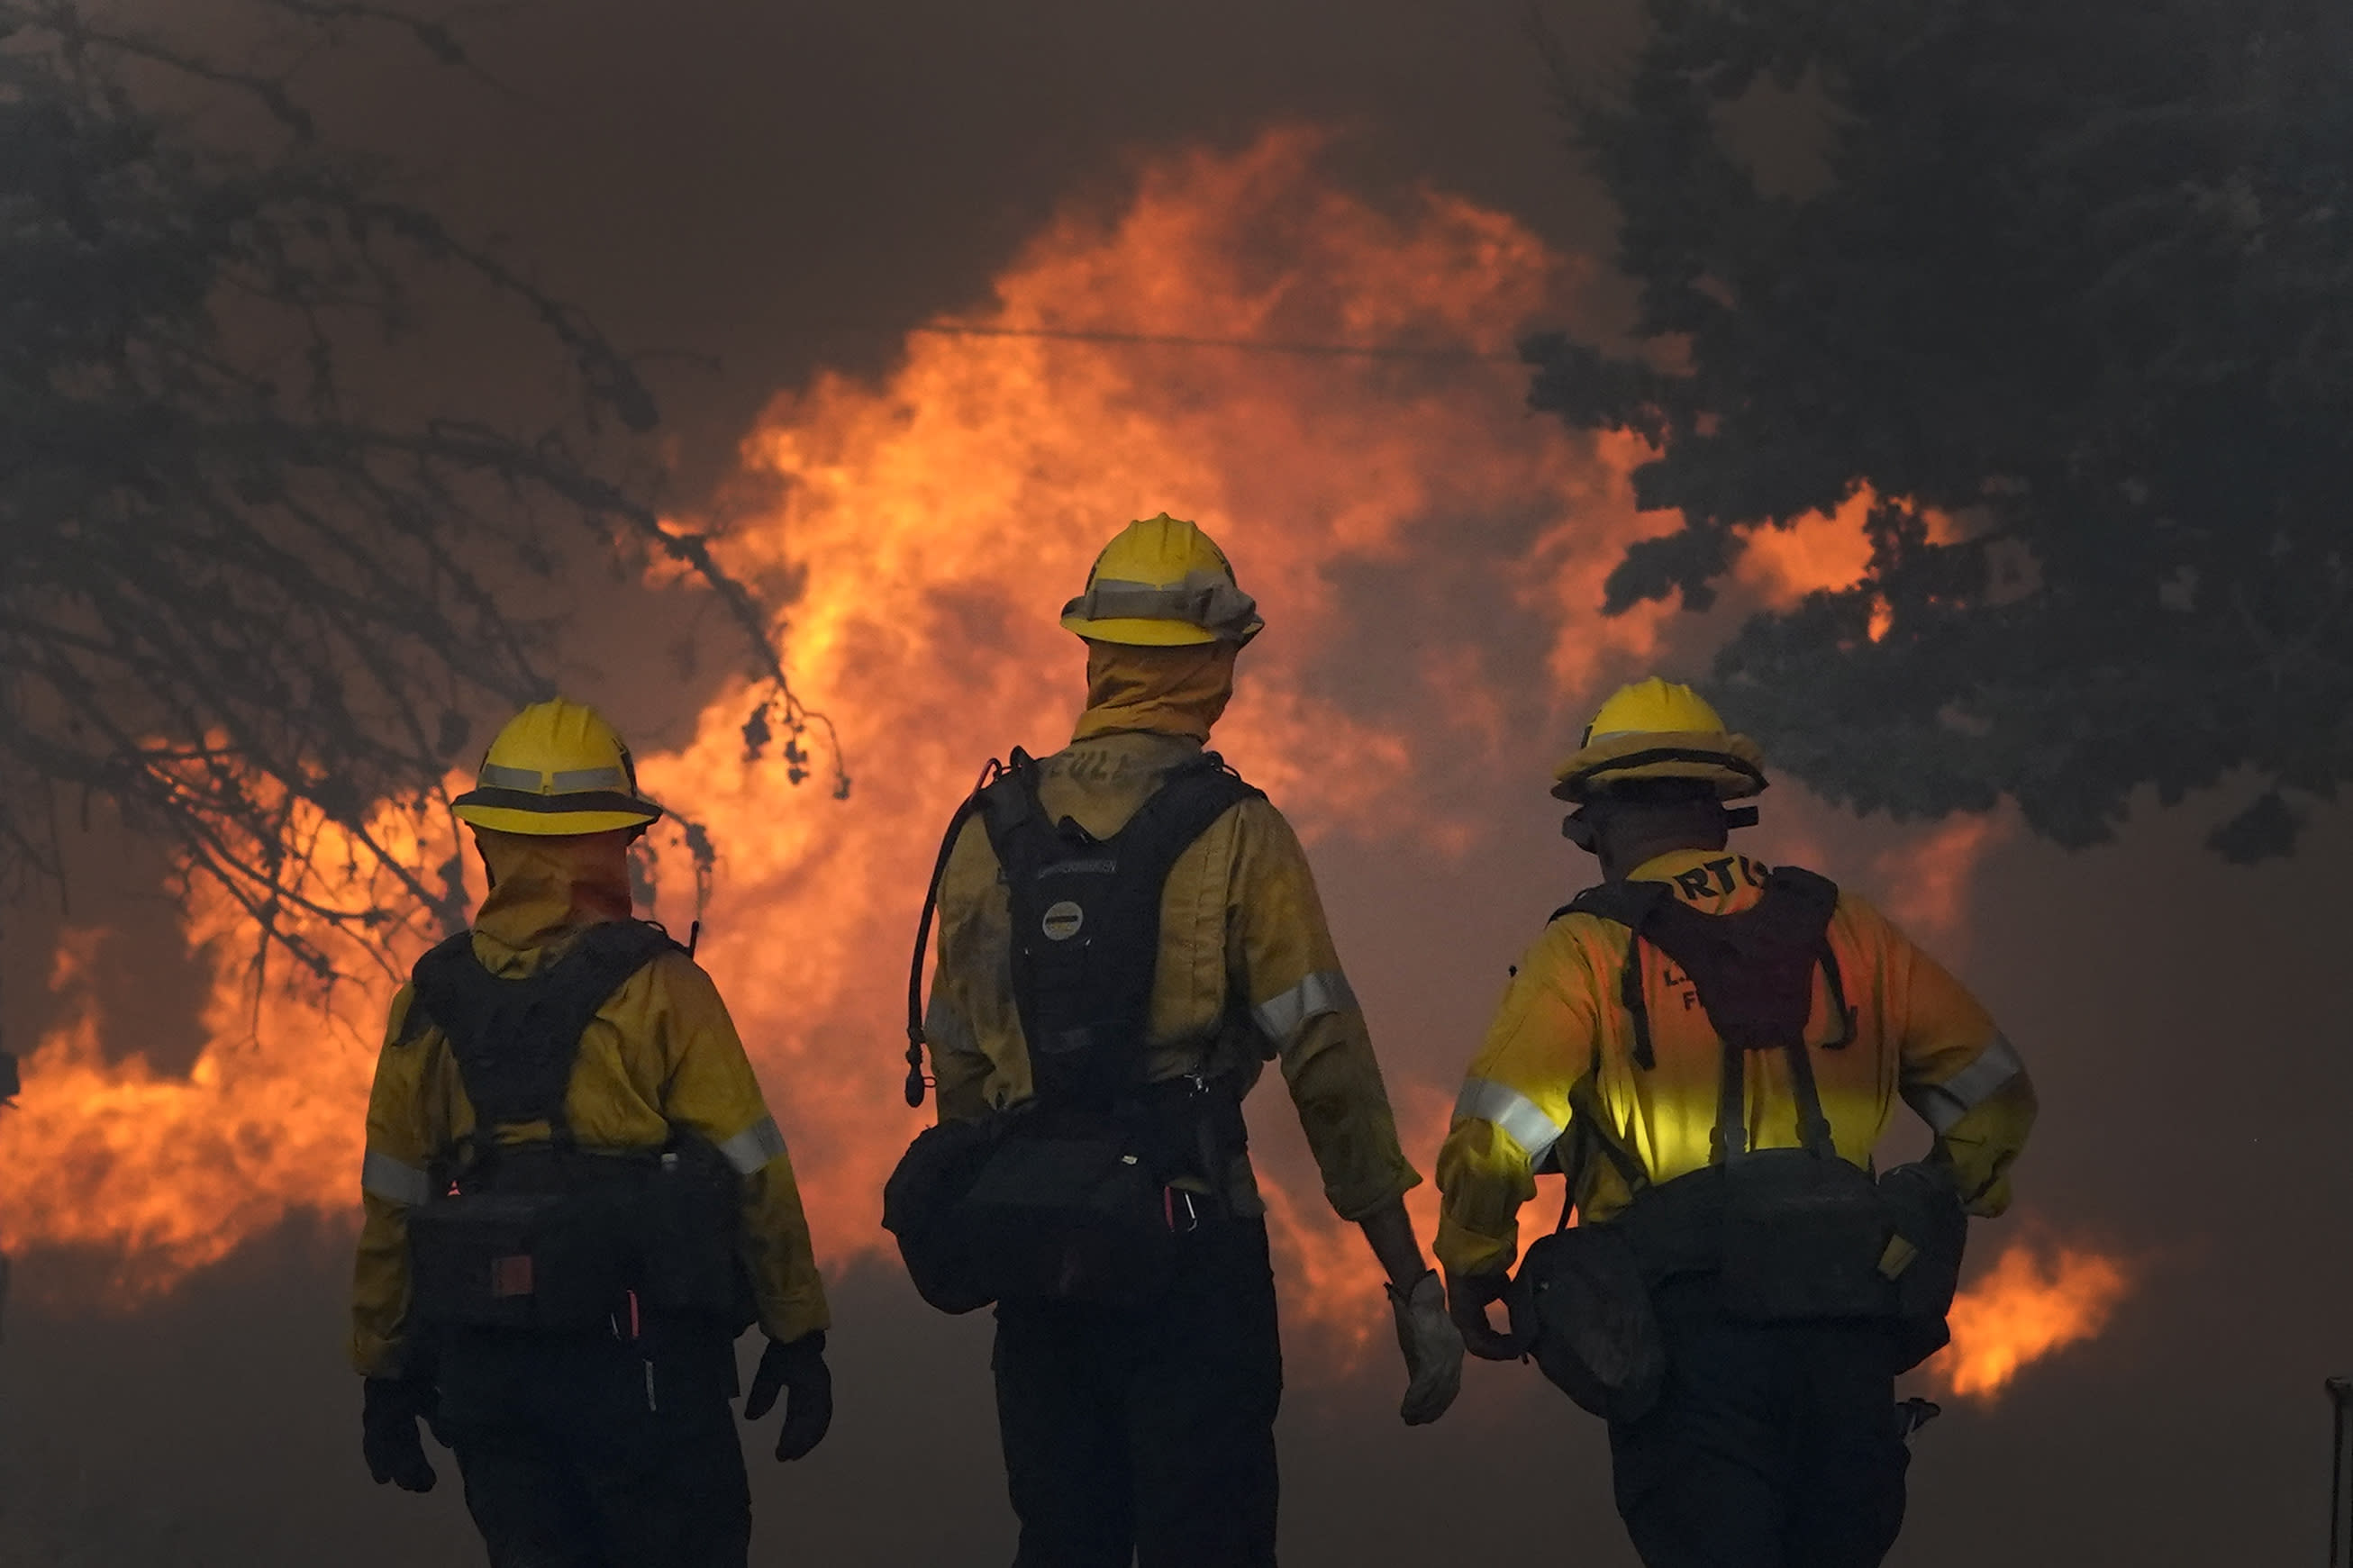 Members of a Los Angeles County Fire crew make a stand to protect a home from the advancing Bobcat Fire along Cima Mesa Rd. Friday, Sept. 18, 2020, in Juniper Hills, Calif. (AP Photo/Marcio Jose Sanchez)